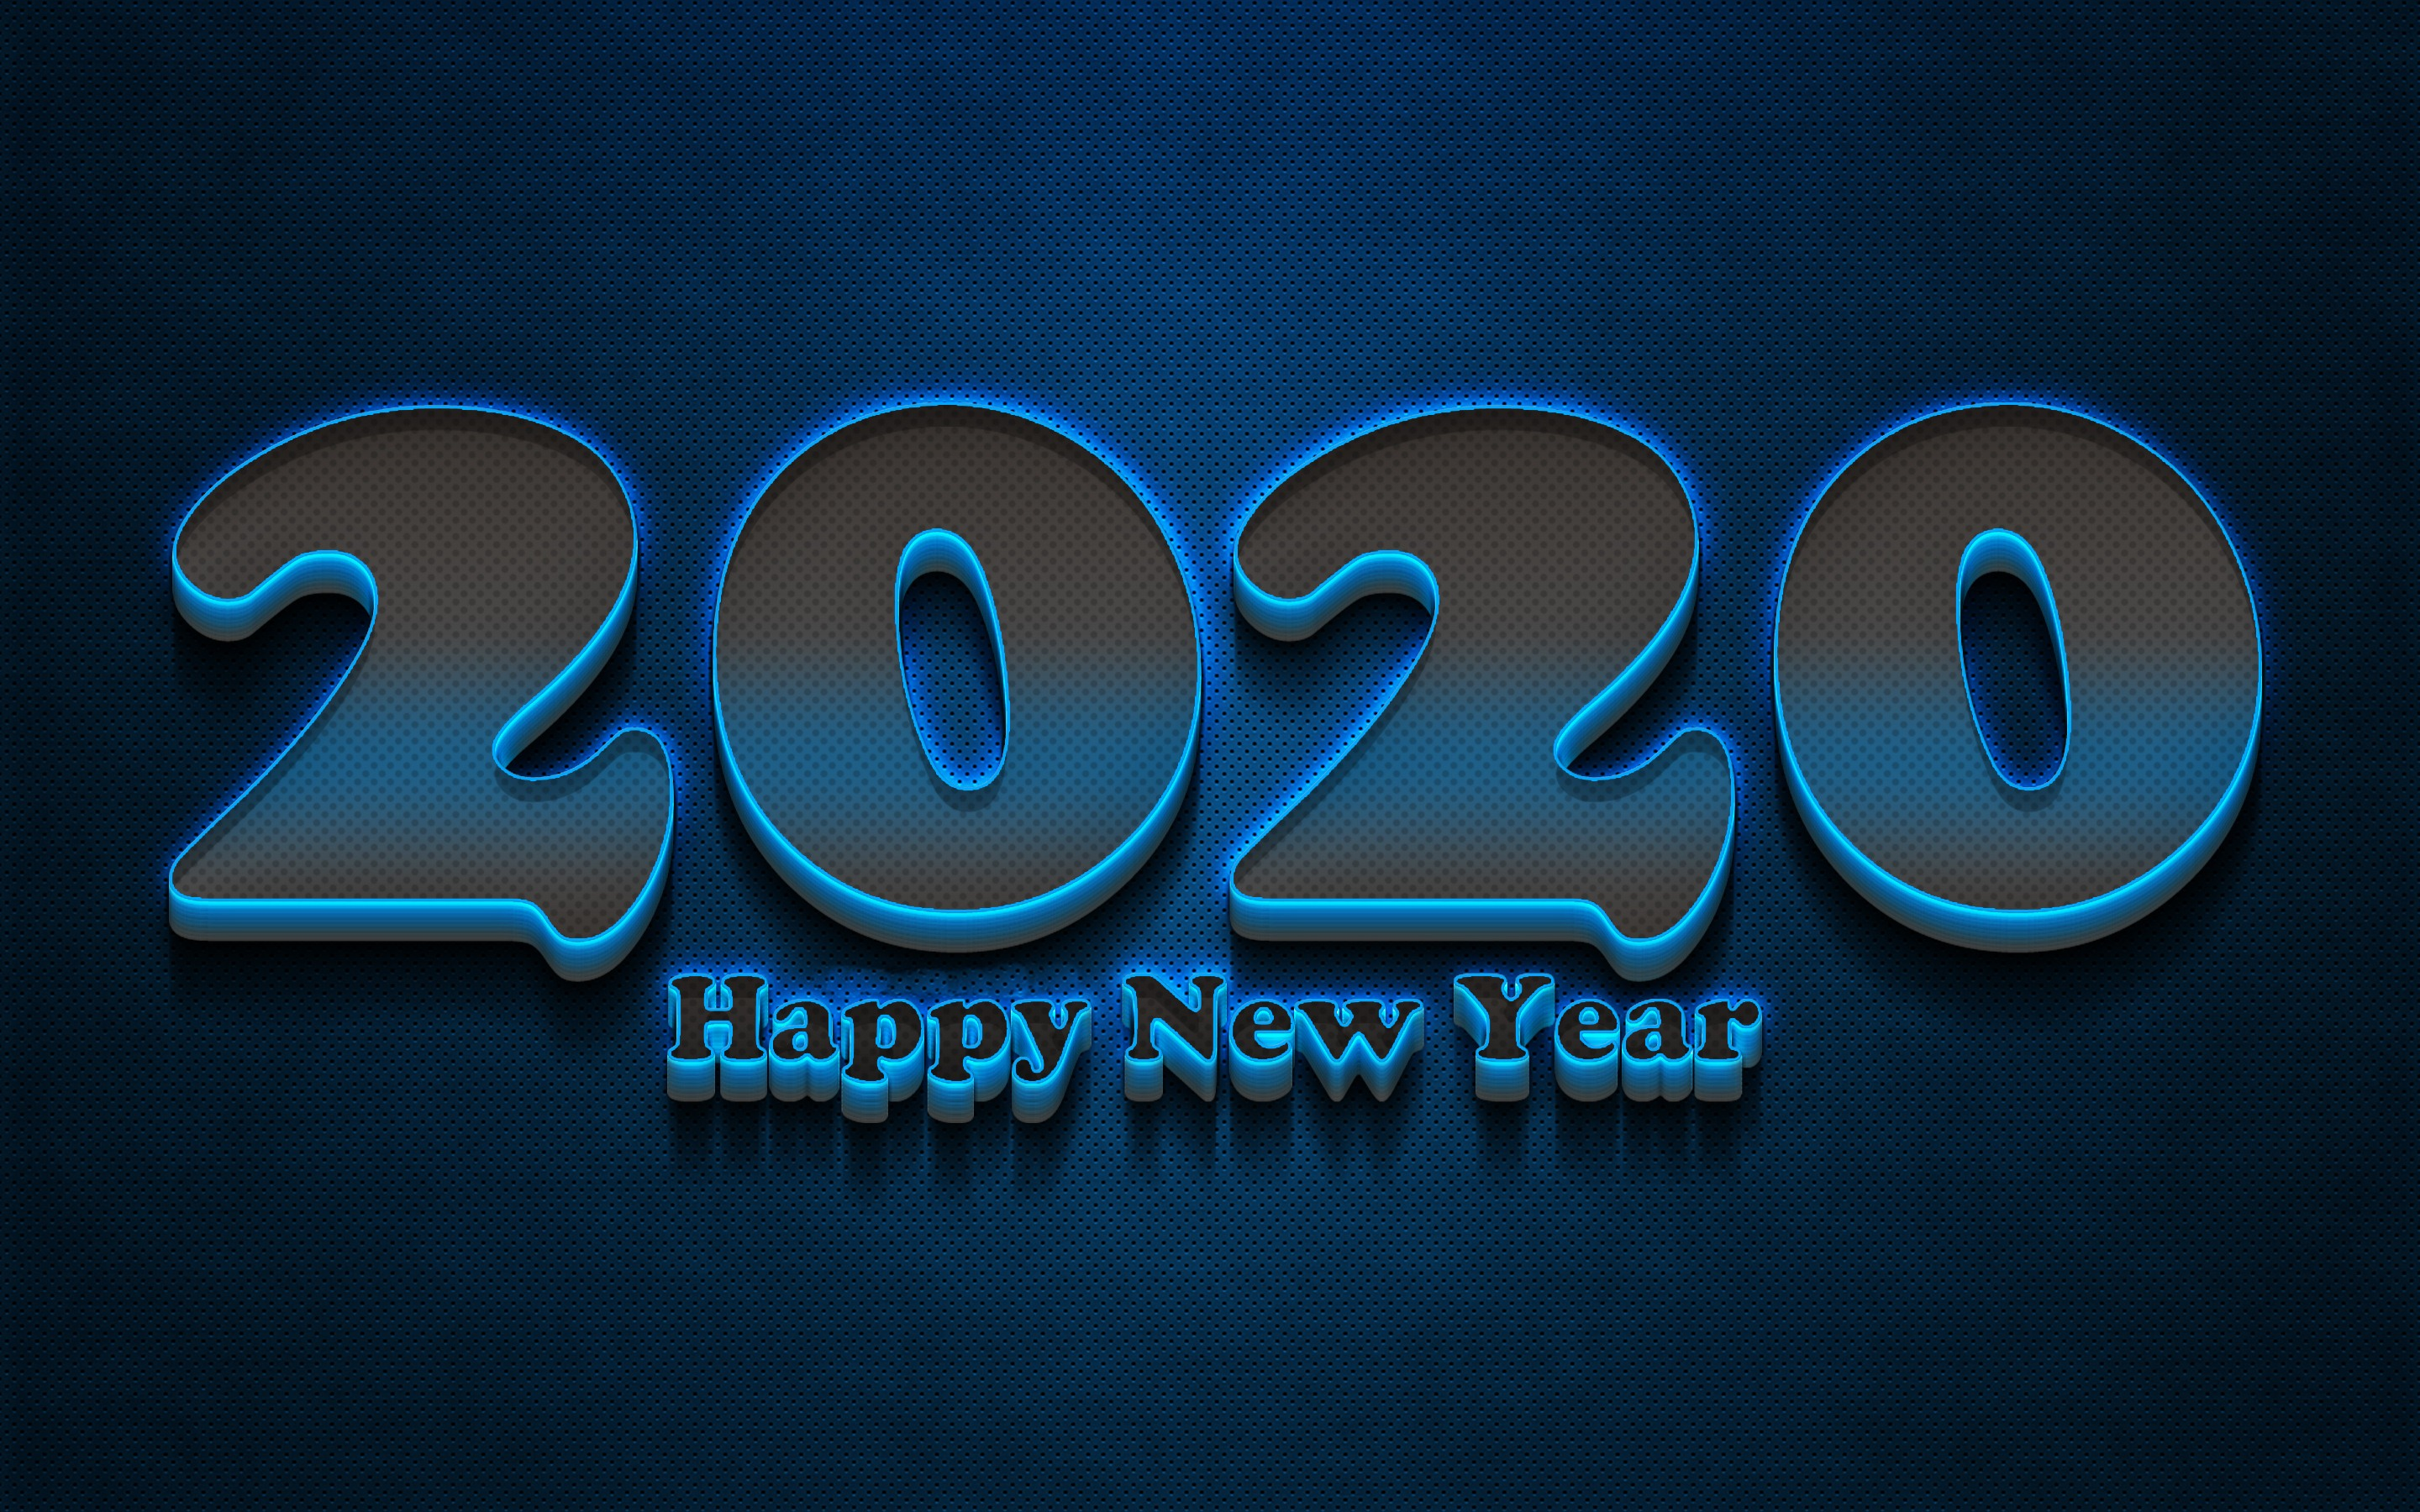 Happy New Year 2020 Best Hd Wallpapers Wallpaper Cave